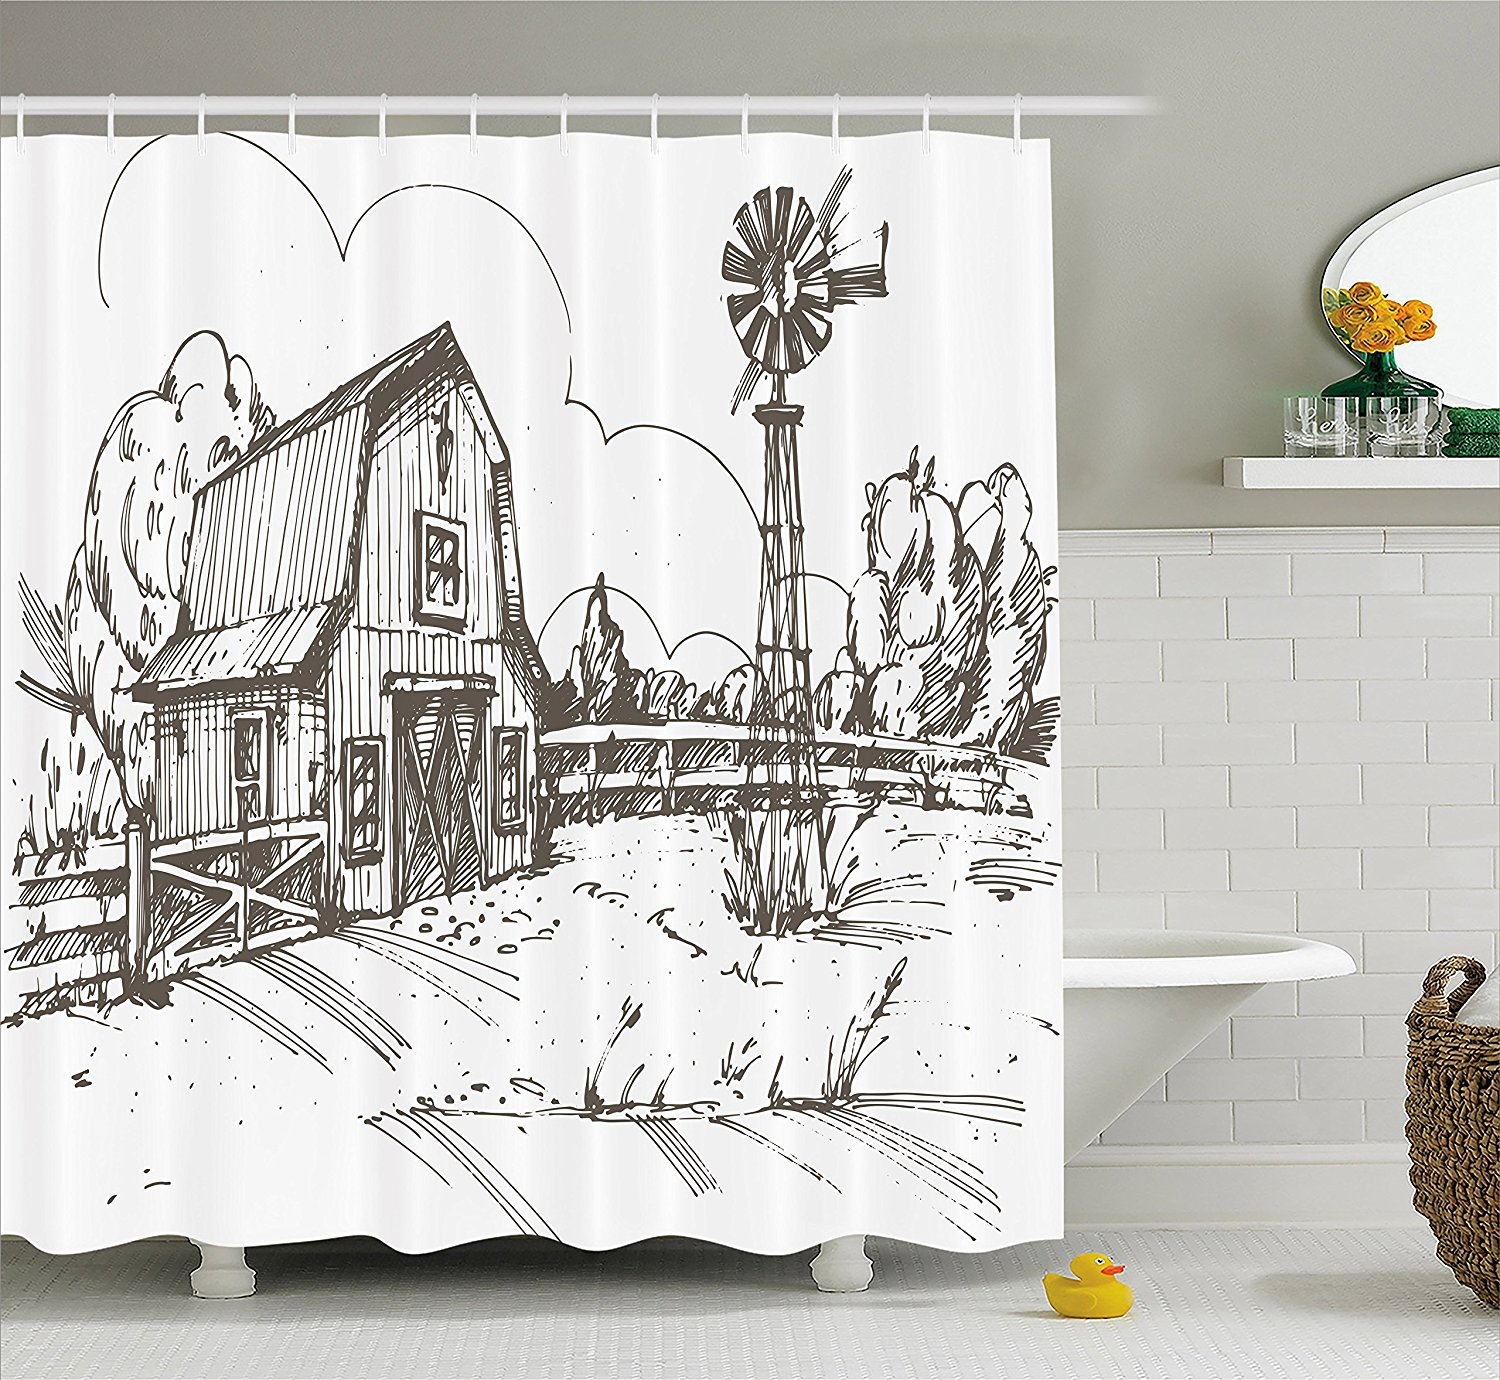 Windmill Decor Shower Curtain Rustic Barn Farmhouse Hand Drawn Illustration Countryside Rural Meadow Bathroom Set In Curtains From Home